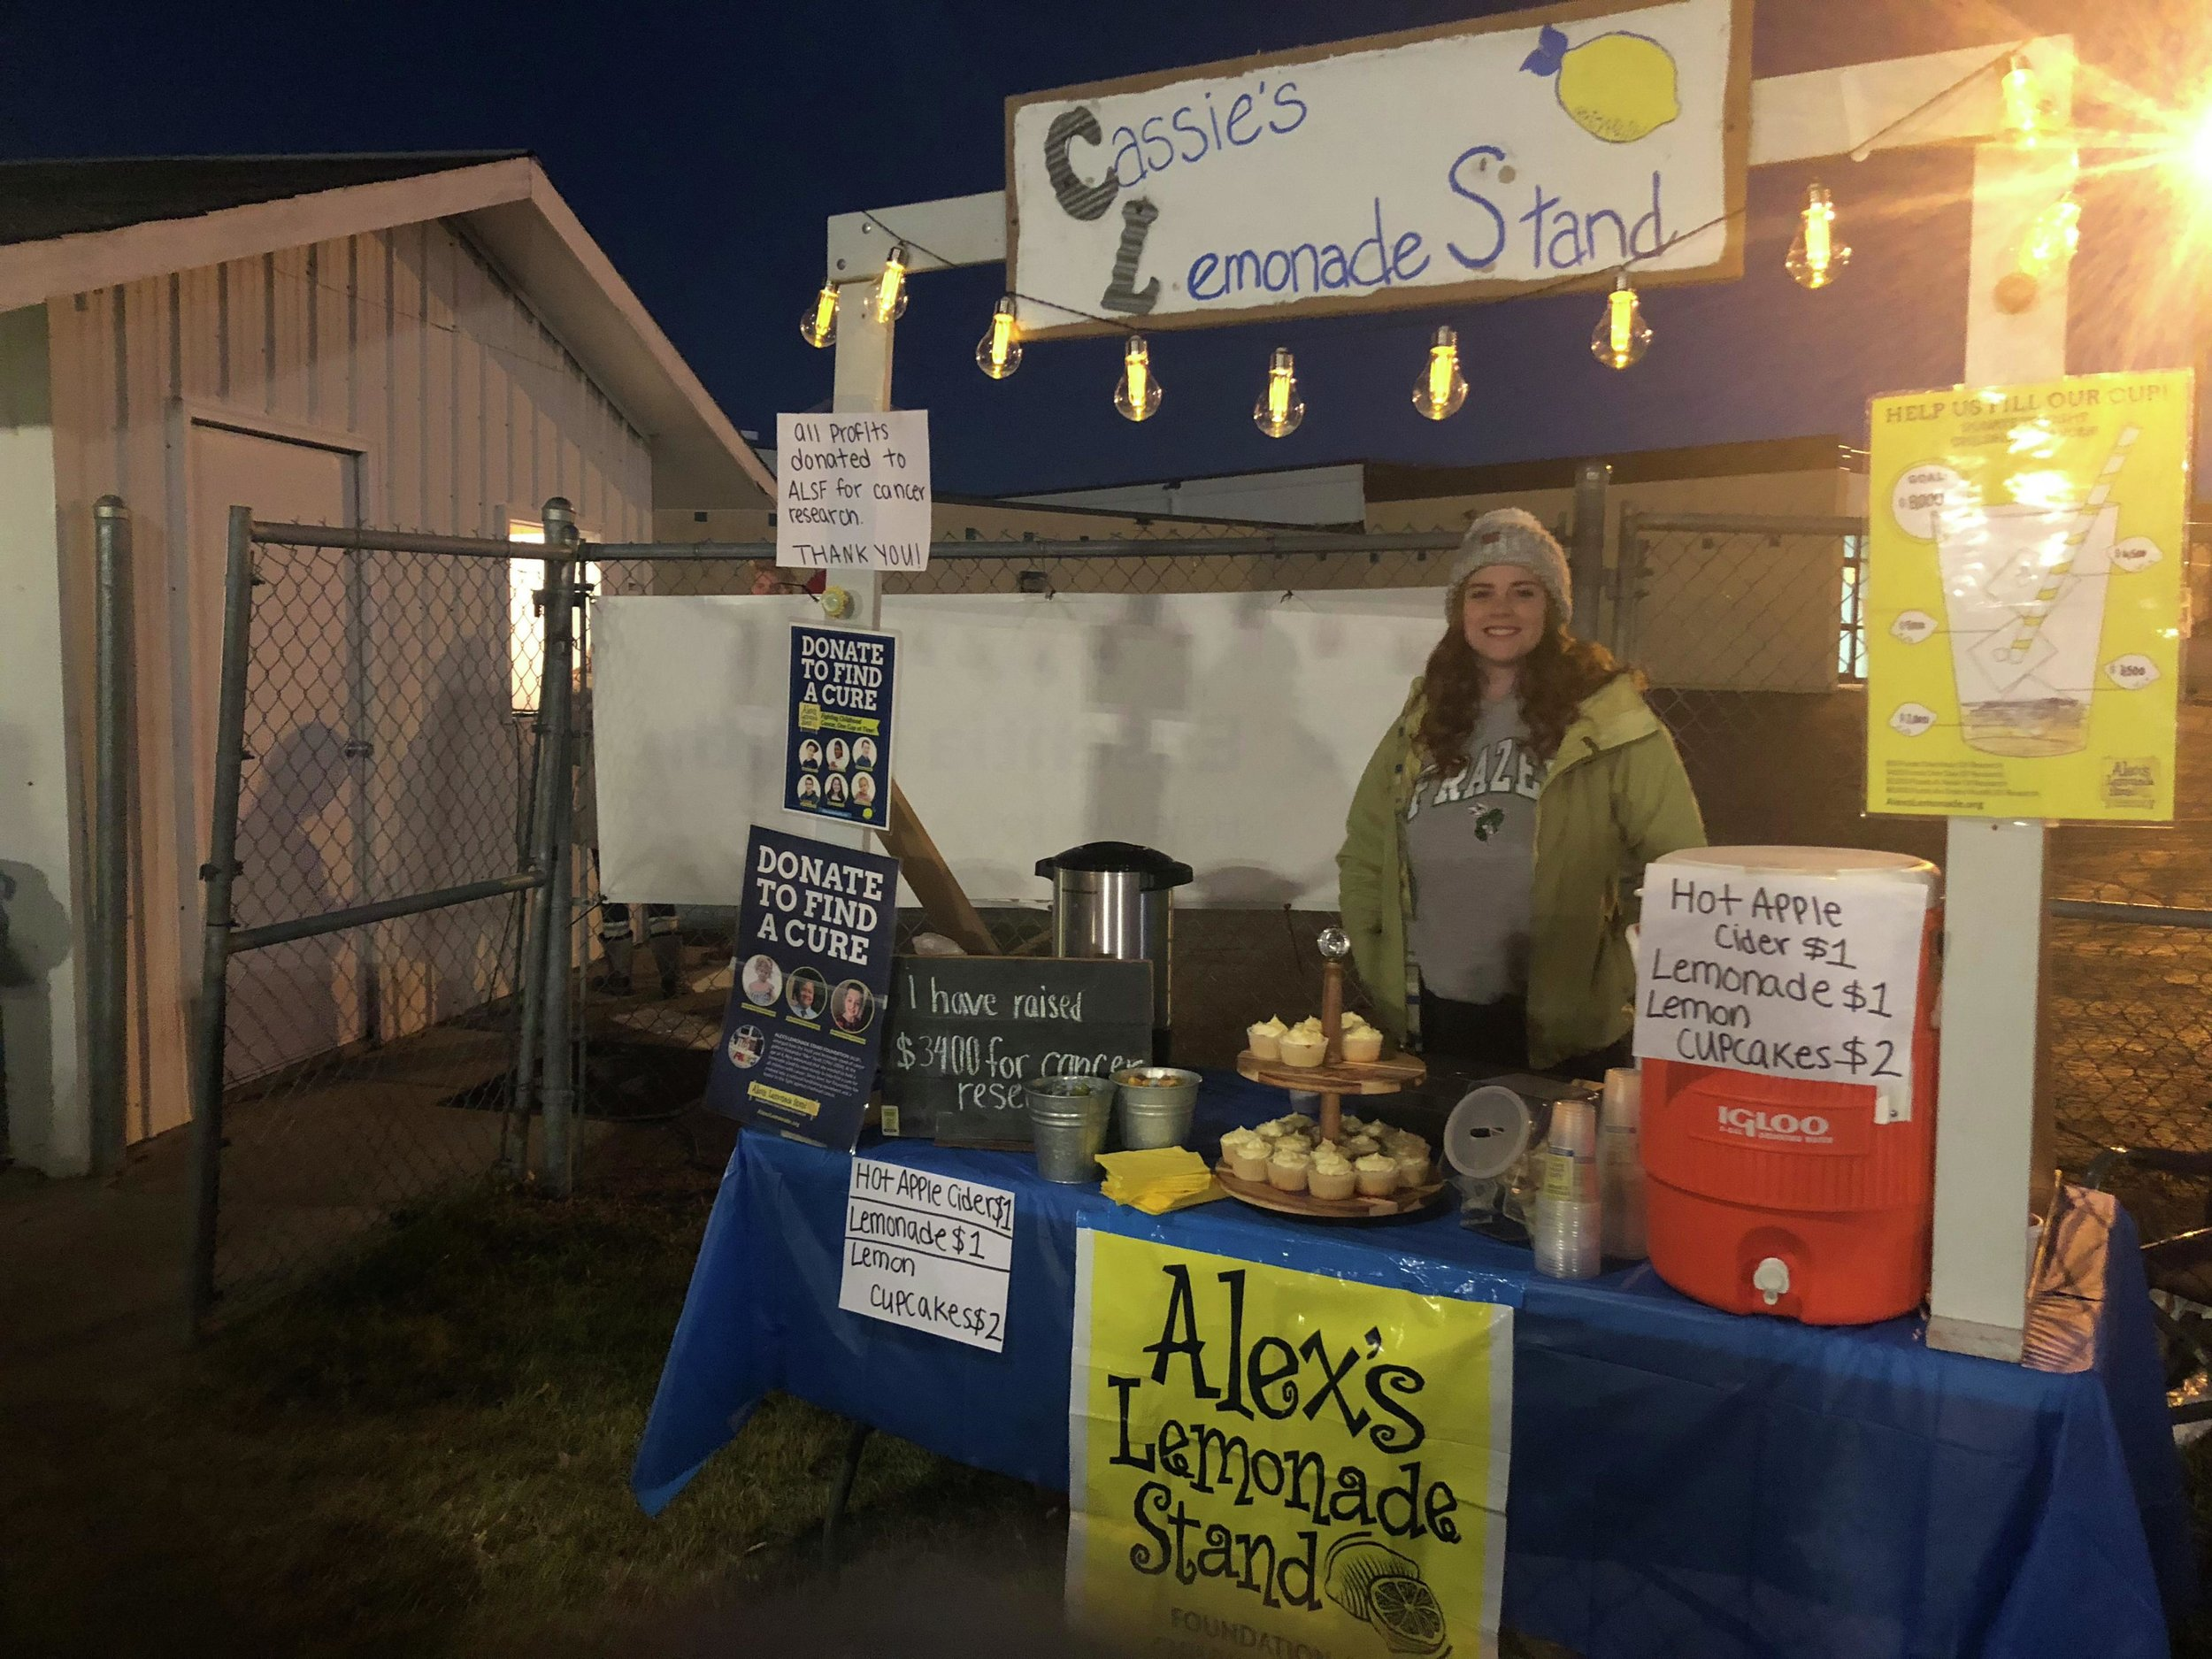 """This fall, Cassidy Shipman brought her lemonade stand outdoors for a Frazee Hornets football game and added hot cider to the menu, which she said was """"a really good idea,"""" as it helped raise even more money for ALSF while helping football fans keep warm in the chilly weather. (Submitted photo)"""